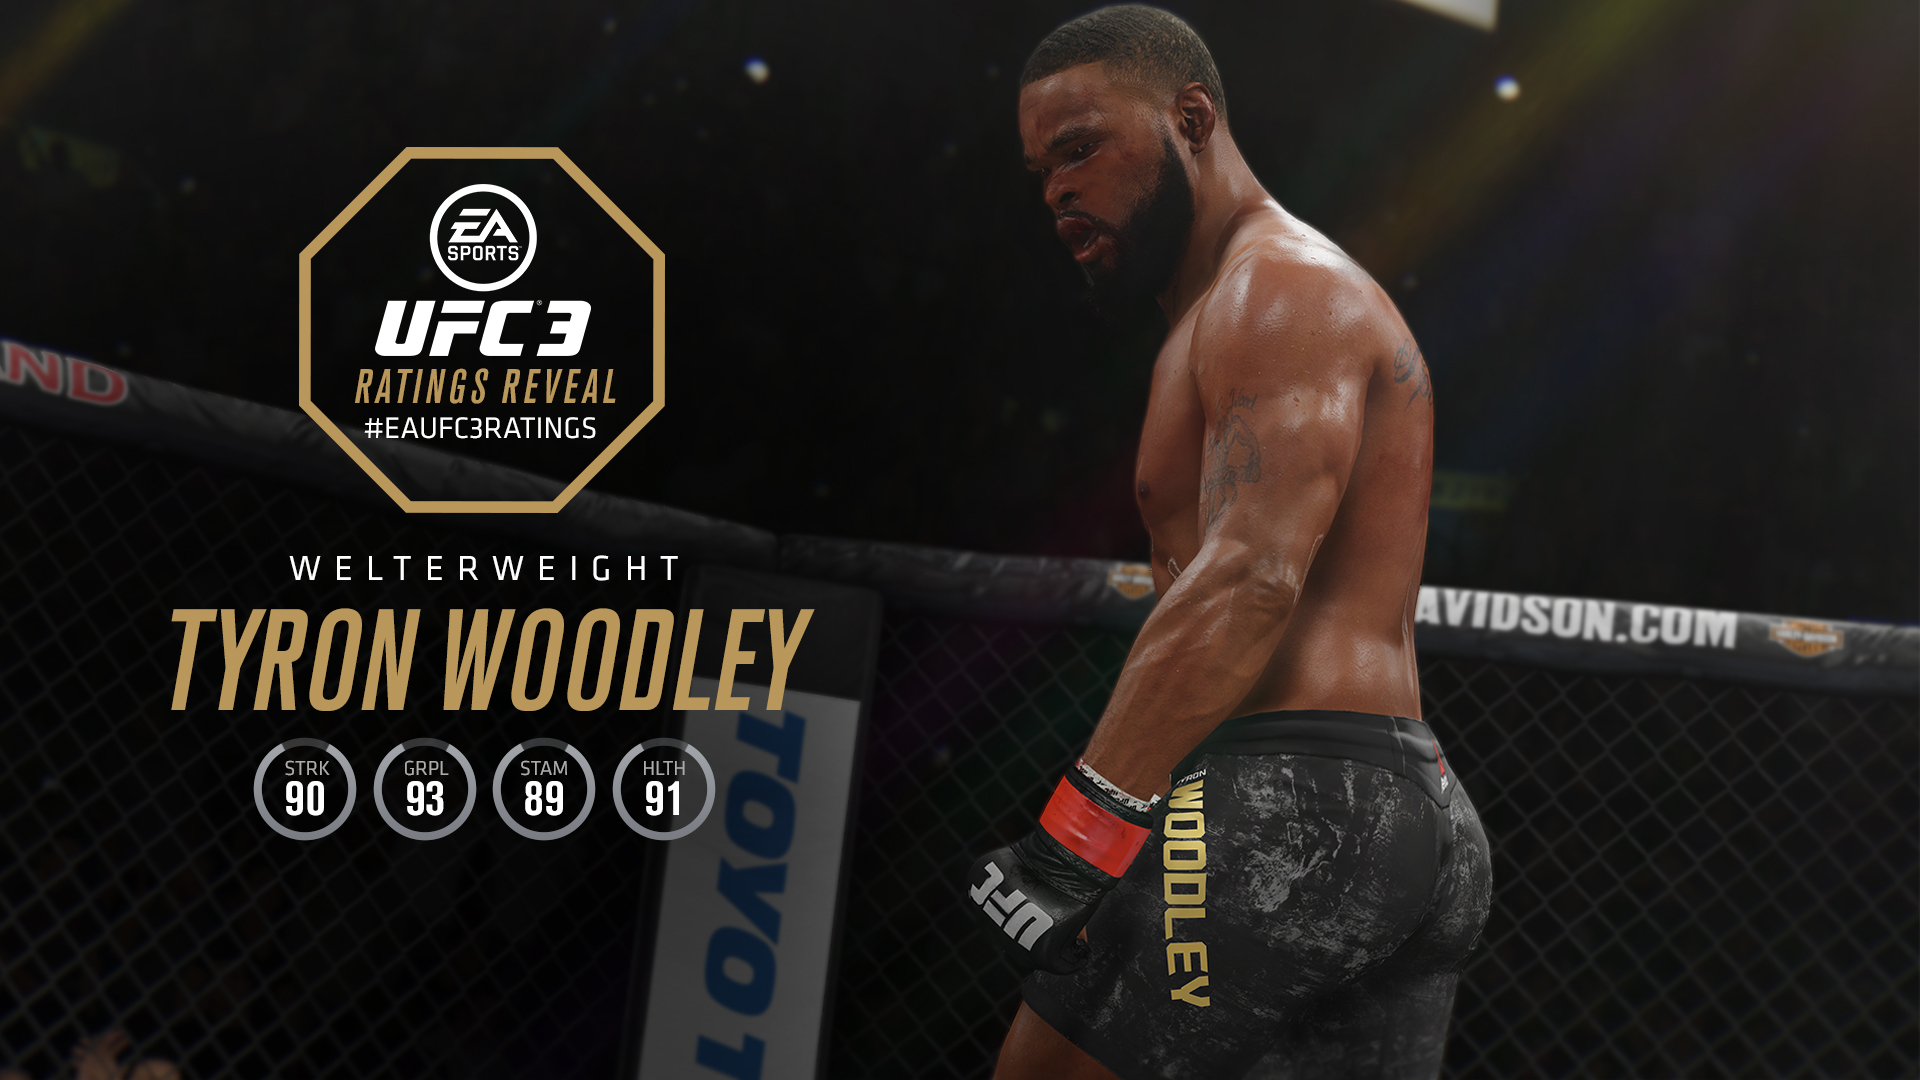 TyronWoodley_Welterweight_1920x1080